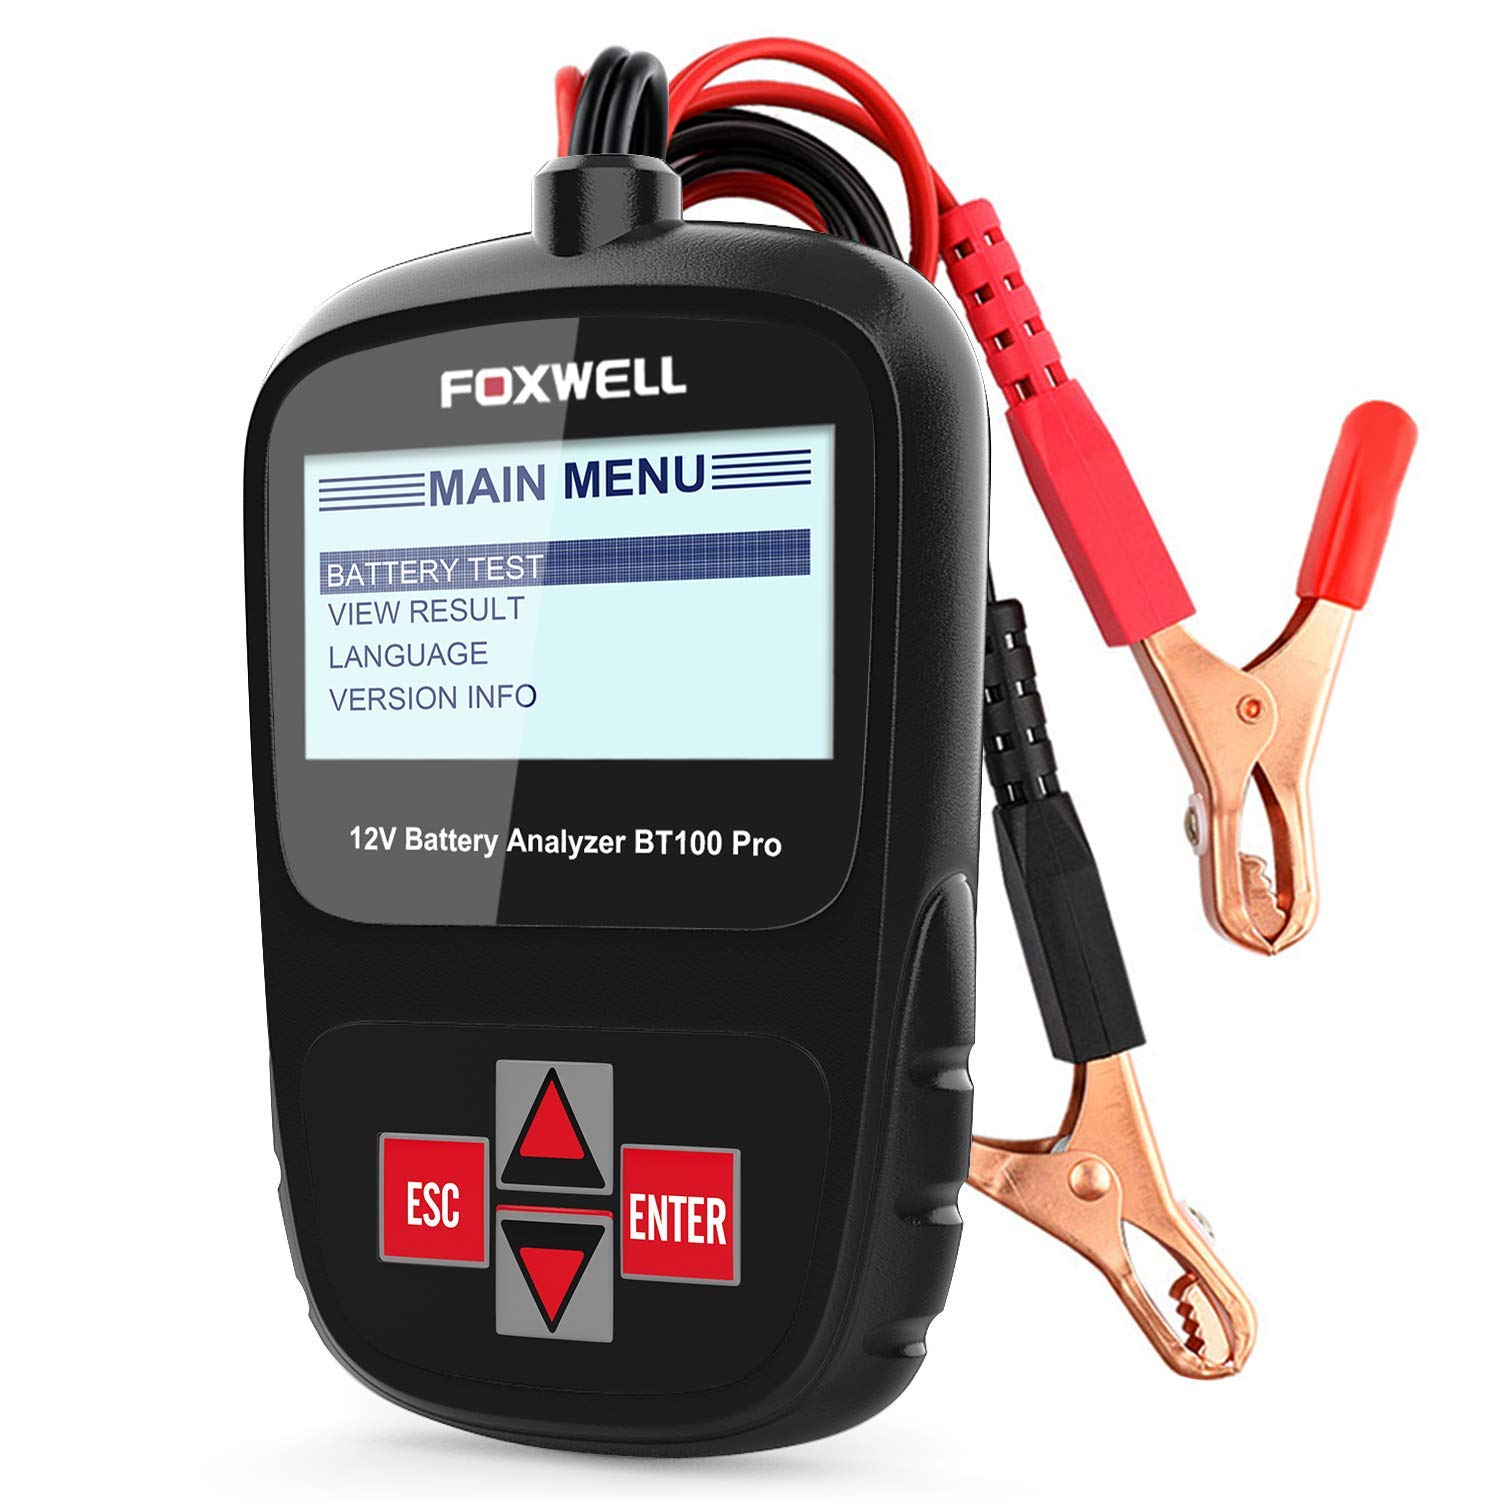 FOXWELL Car Battery Tester BT100 Pro LCD Screen 12V Digital Battery Load Tester Automotive Charging System Analyzer for Car Motorcycle